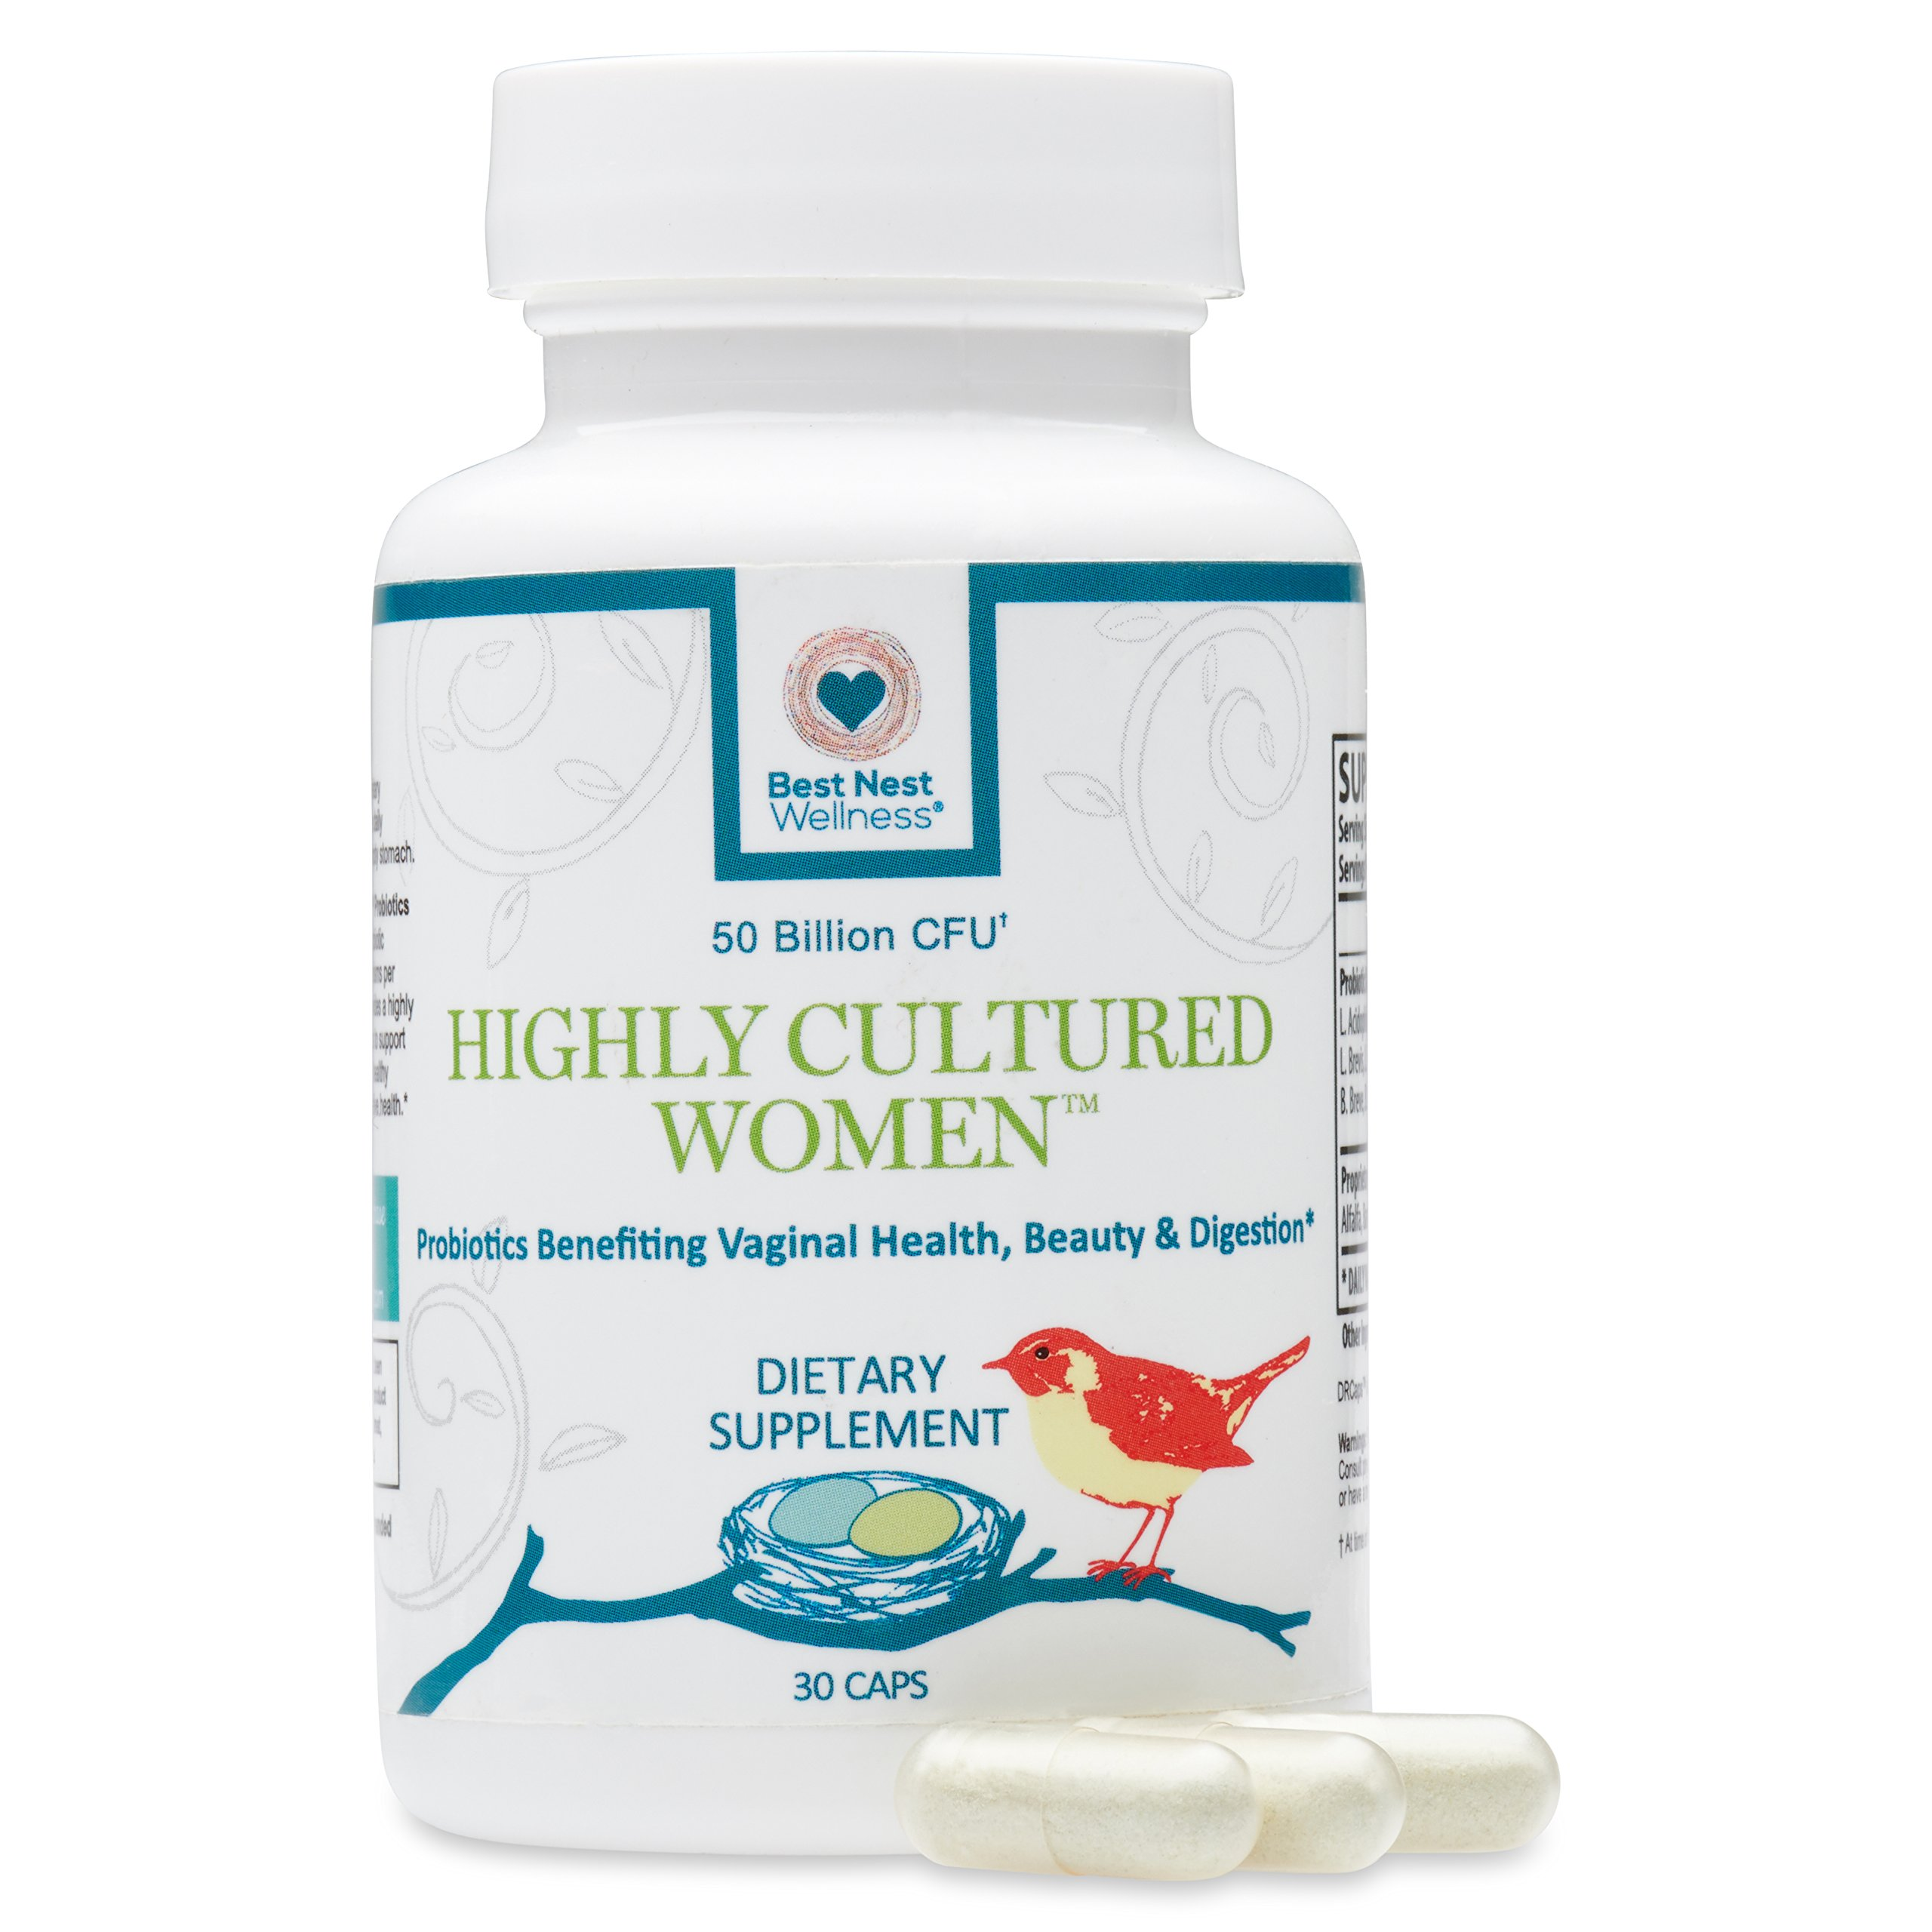 Highly Cultured Women's Probiotics 50 Billion CFU | 13 Strains, 2x Most Probiotic Supplements with Acidophilus, Patented Time Release Capsules, Once Daily Probiotic Supplement, 30 Ct, Best Nest